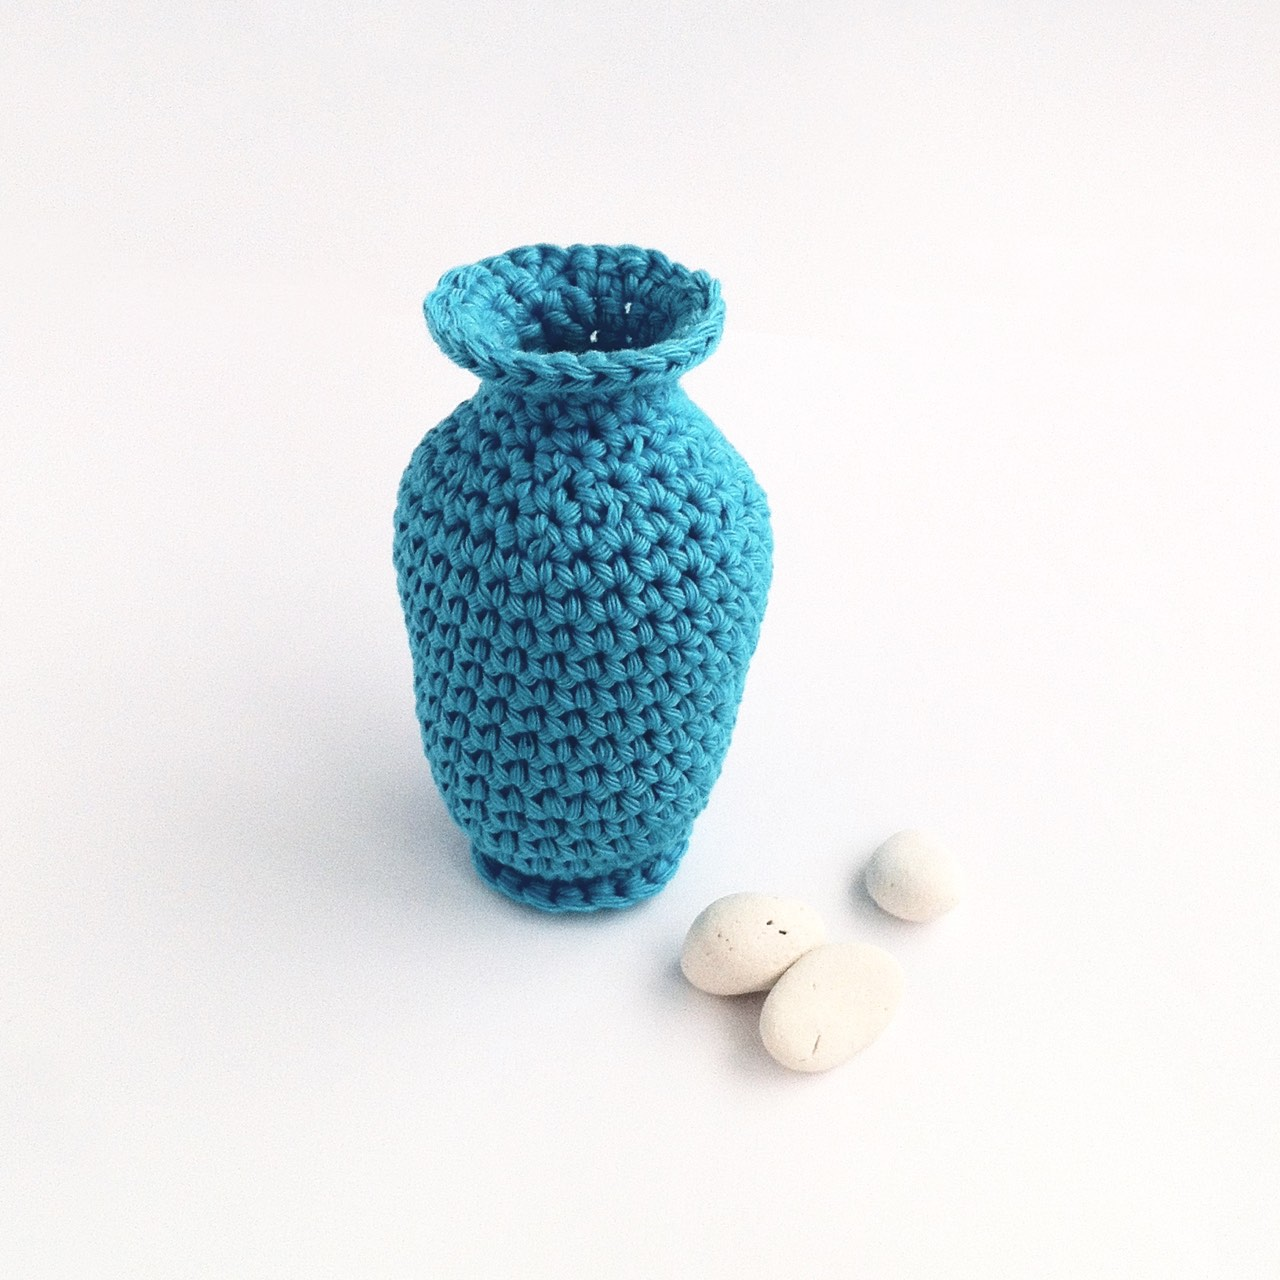 Crocheted Bud Vase